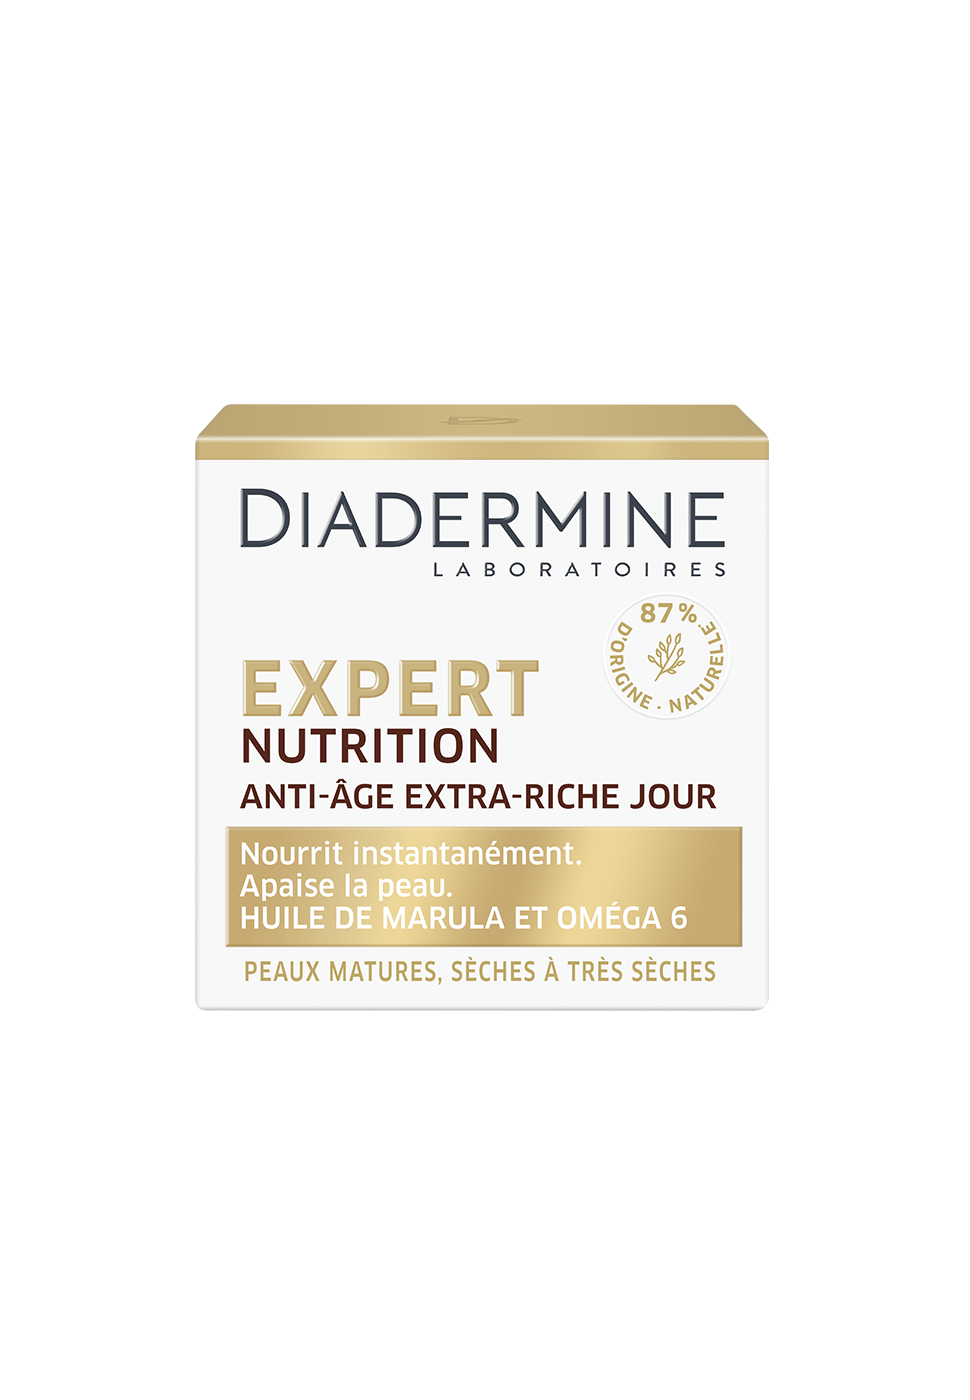 expert nutrition anti-age extra-riche jour